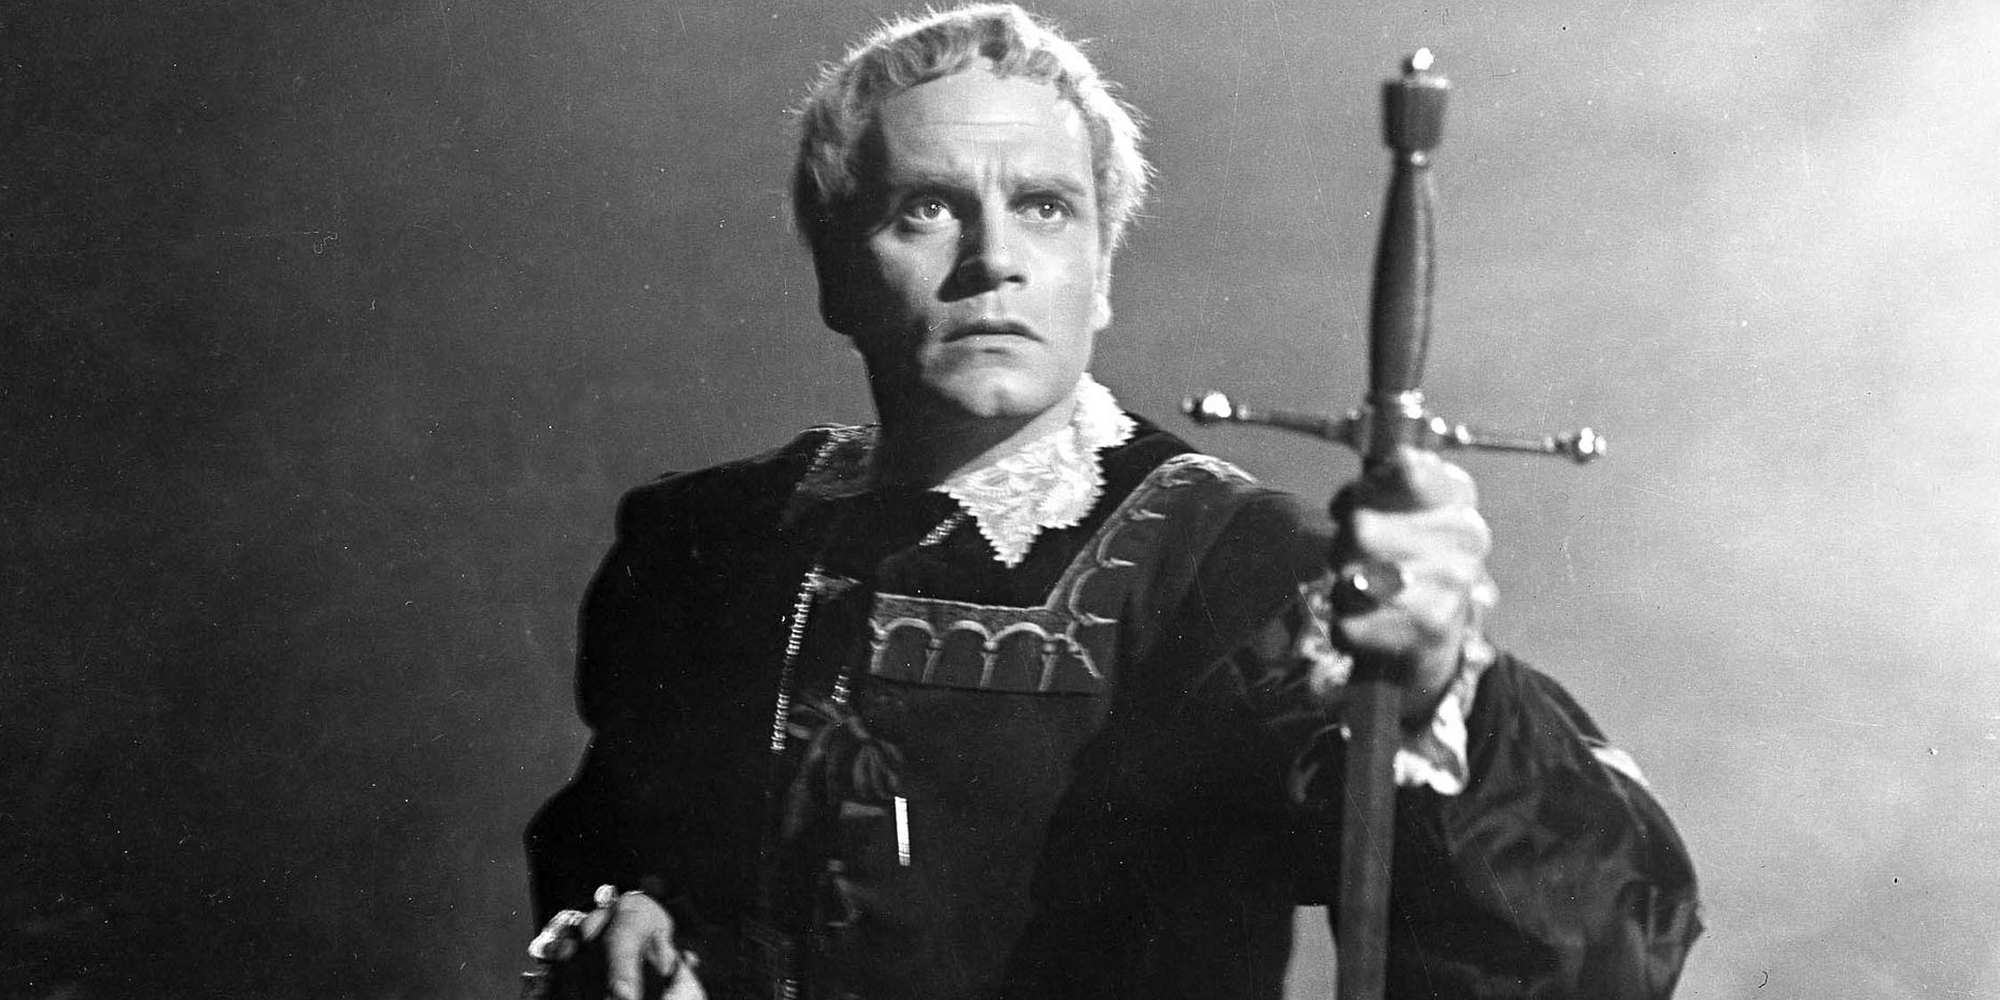 /images/upload/blog/1720/1720_Laurence-Olivier-as-Hamle-011.jpg